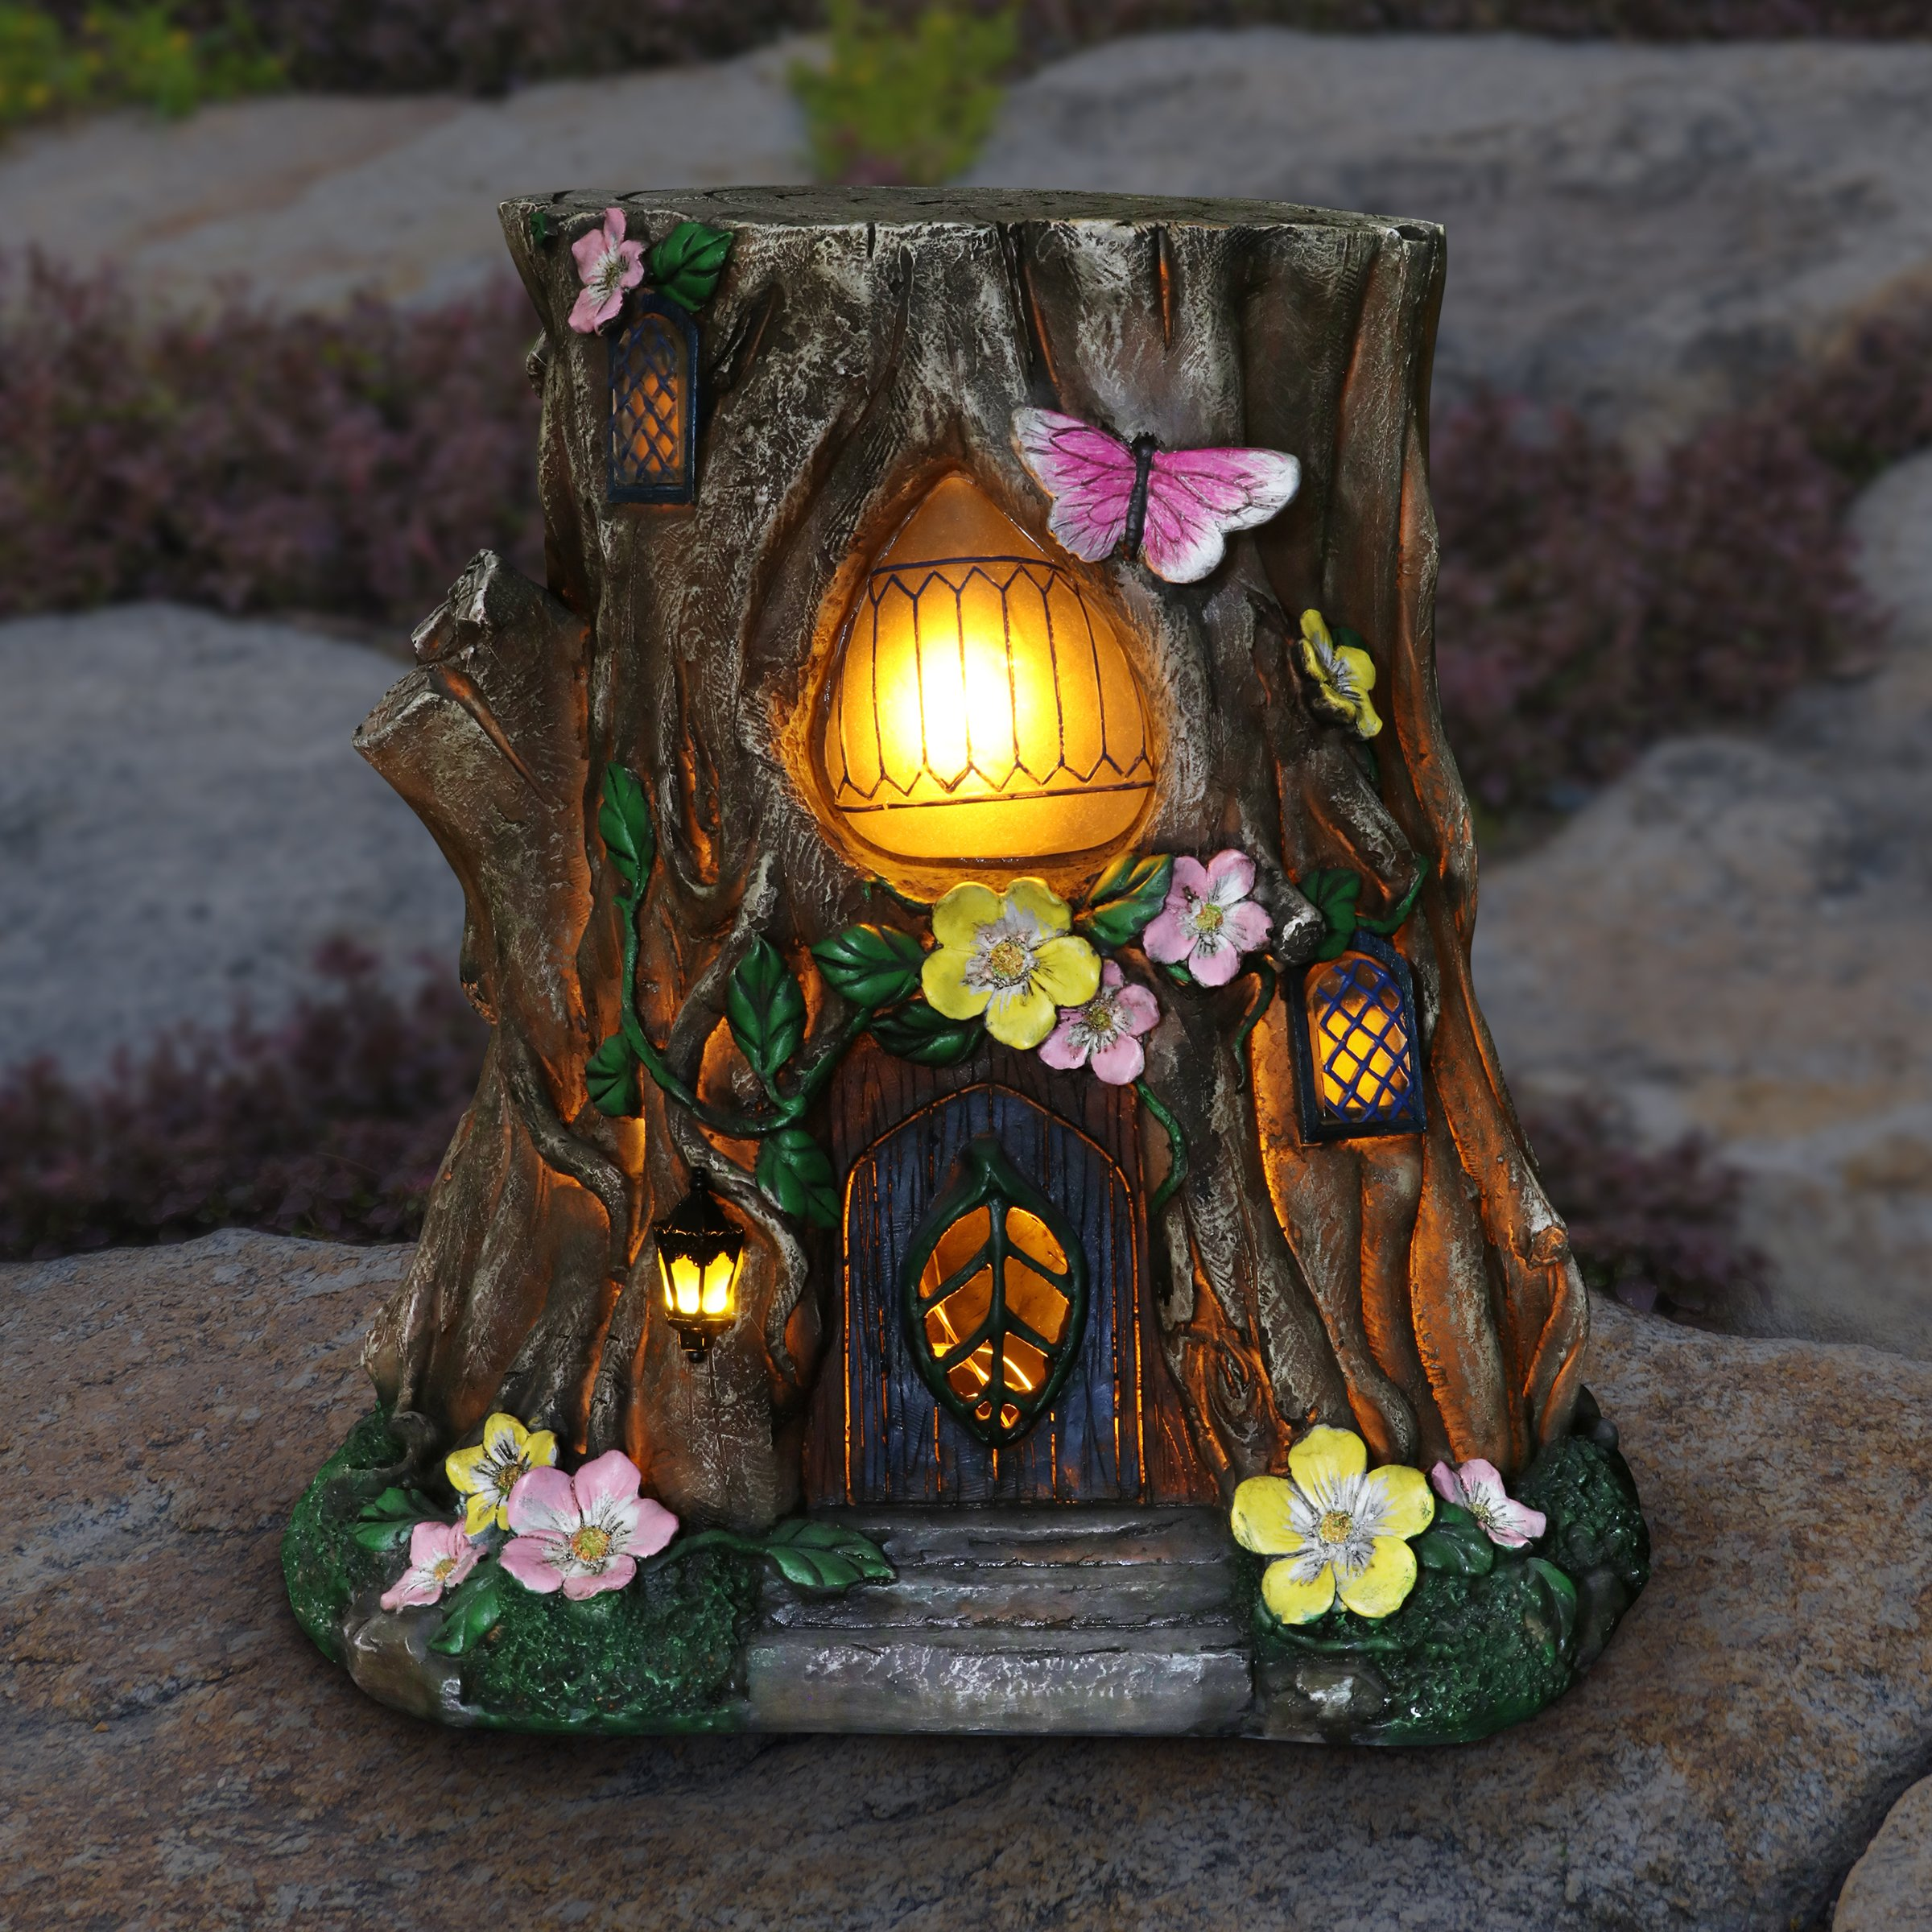 Exhart Gardening Gifts –Fairy House Tree Stump Statue - Large Garden Statues w/Solar Garden Lights, Outdoor Use, Fairy Themed Garden Décor, Weather Resistant Resin Statues by Exhart (Image #2)